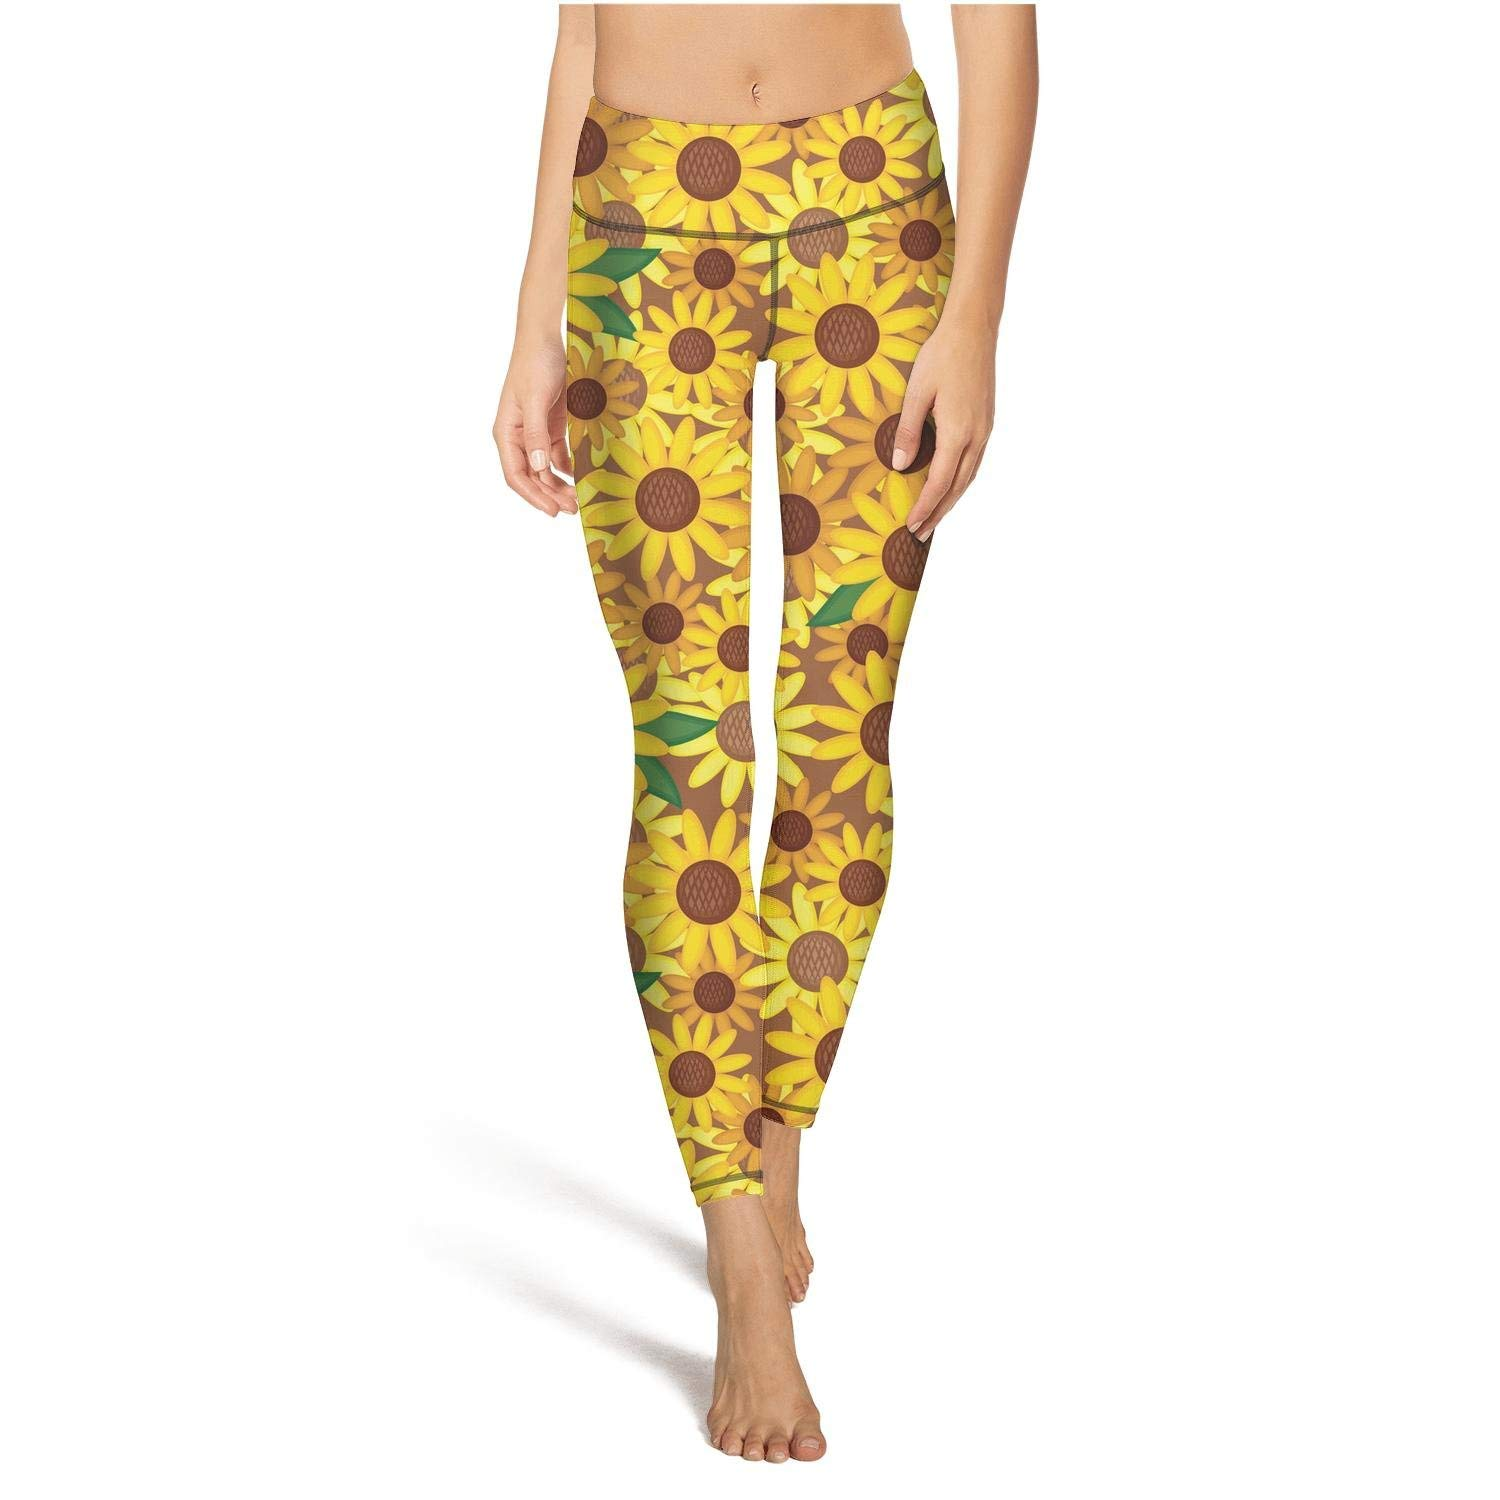 8b9f20f49905 Get Quotations · black ink tigers yellow sunflowers floral womens Printed  cute yoga pants yoga pants